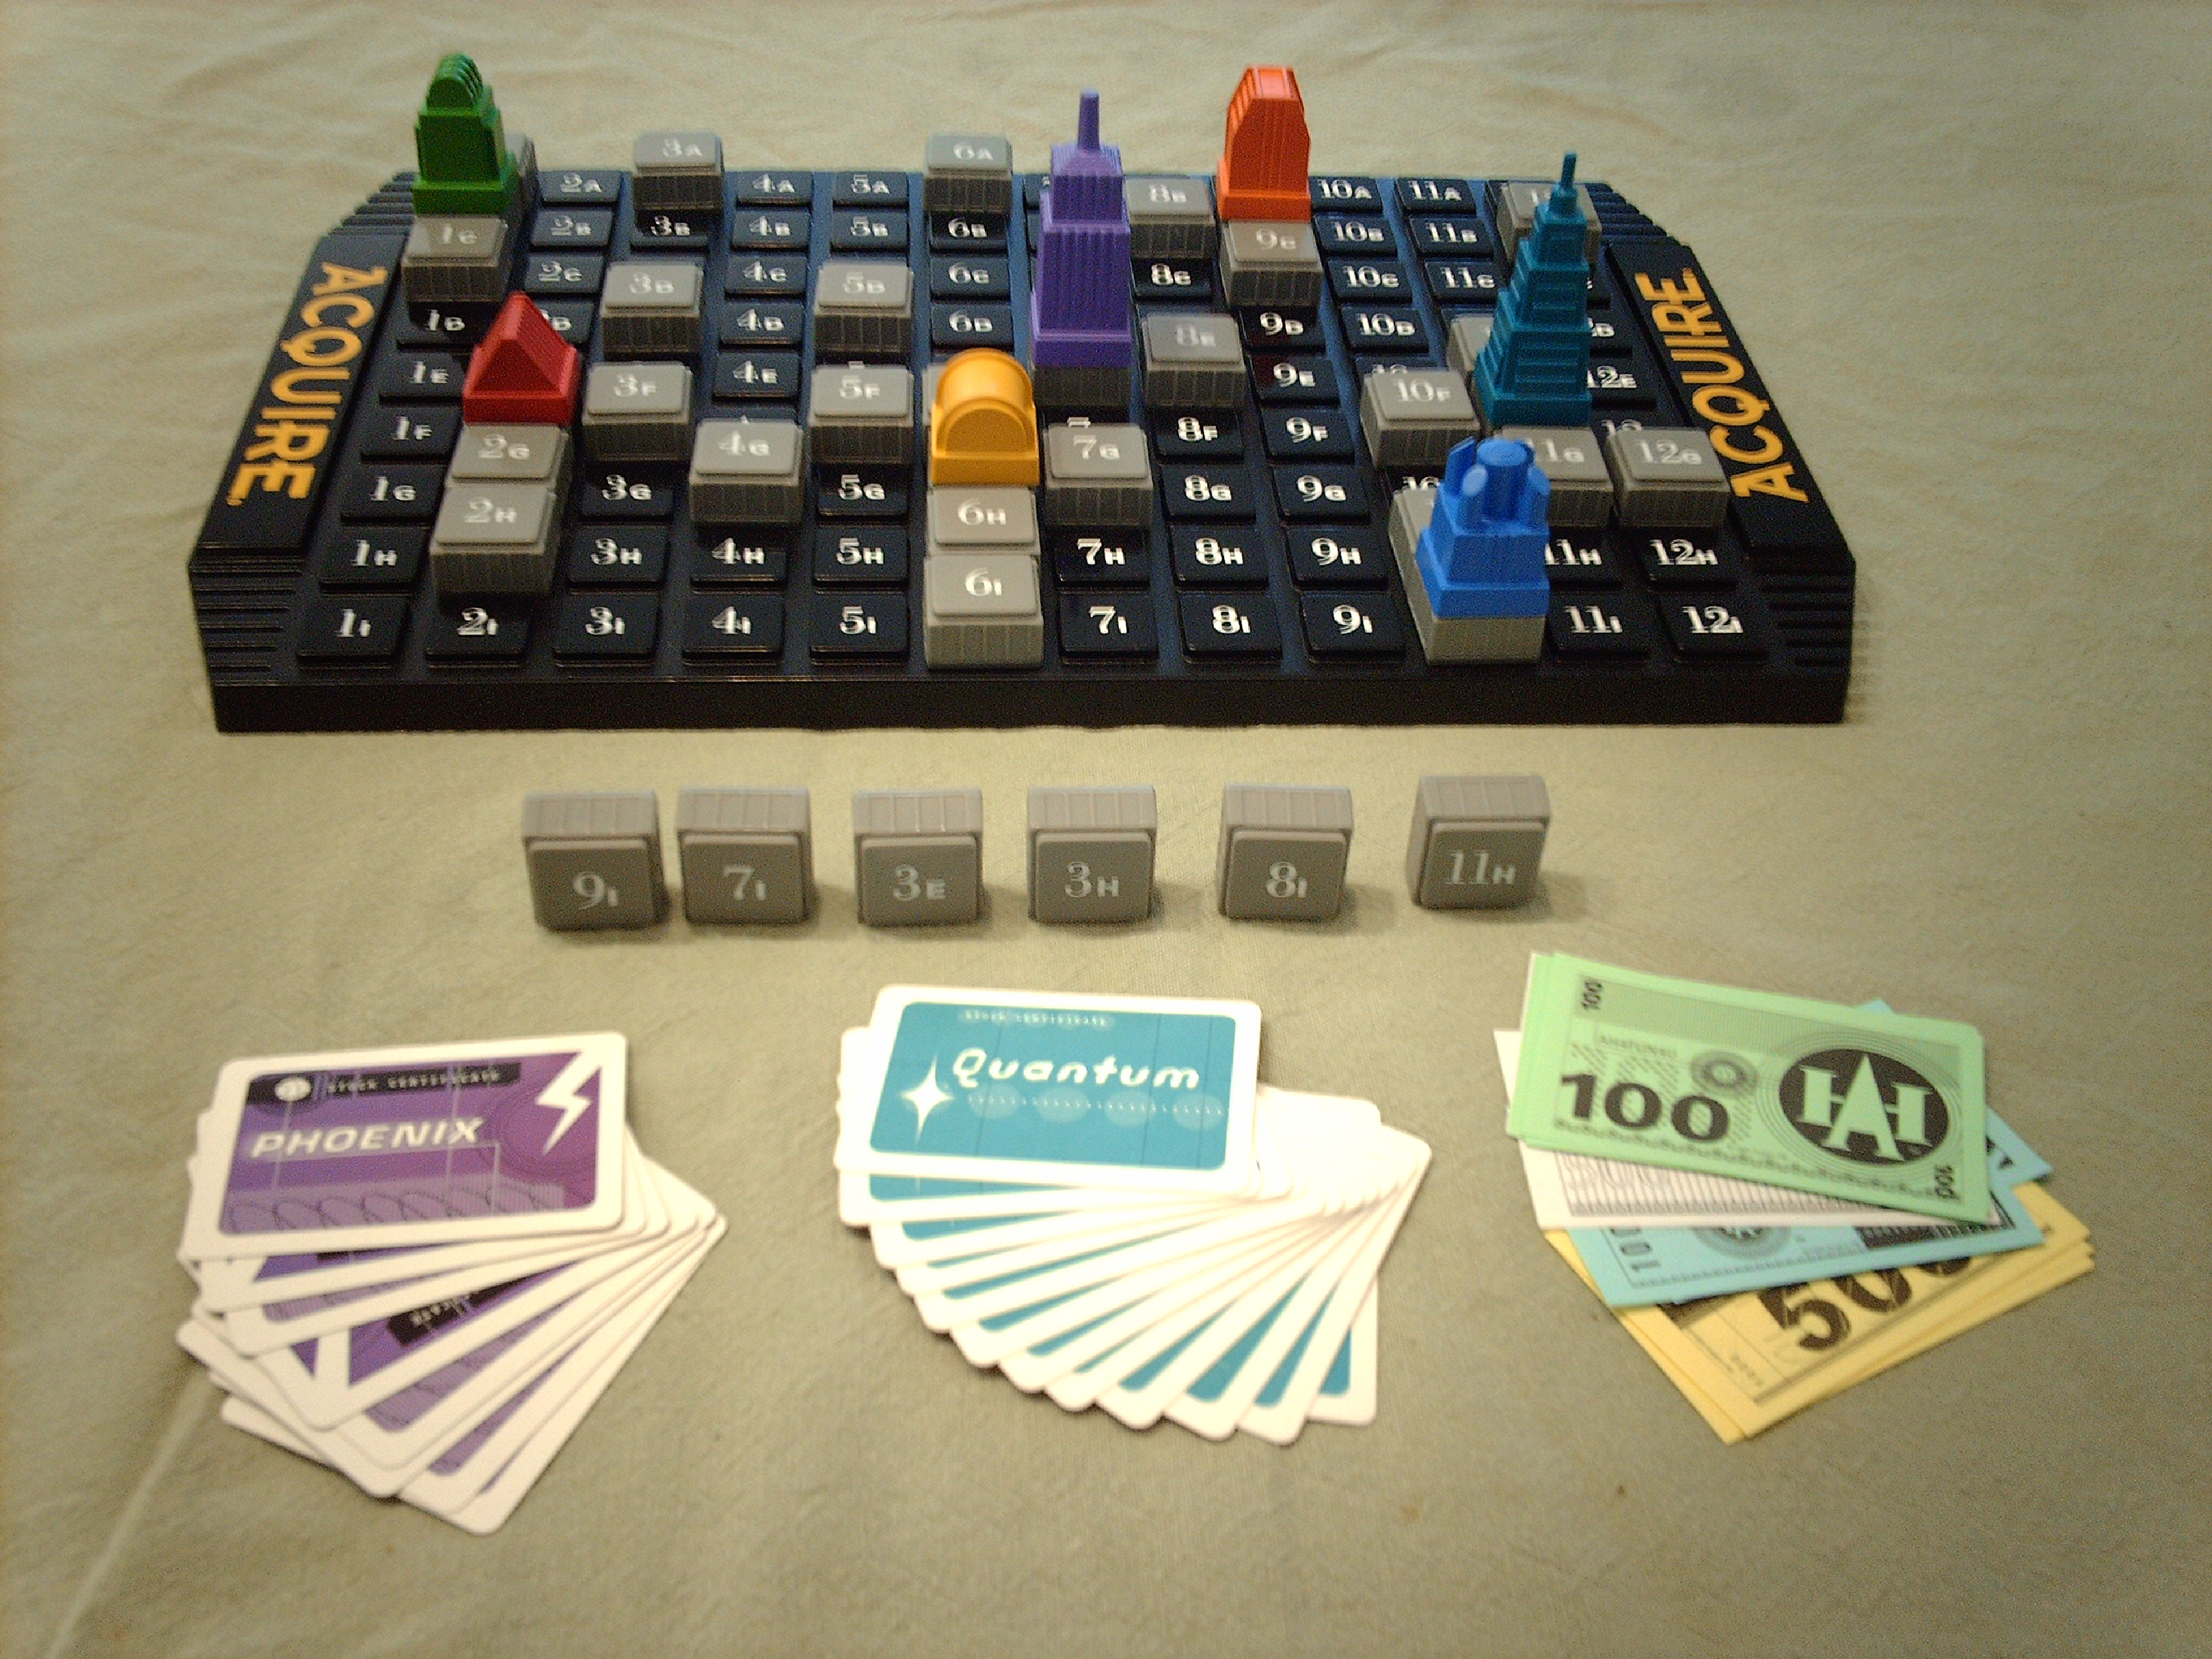 1 Individual Information Card for 1999 Hasbro Game of ACQUIRE